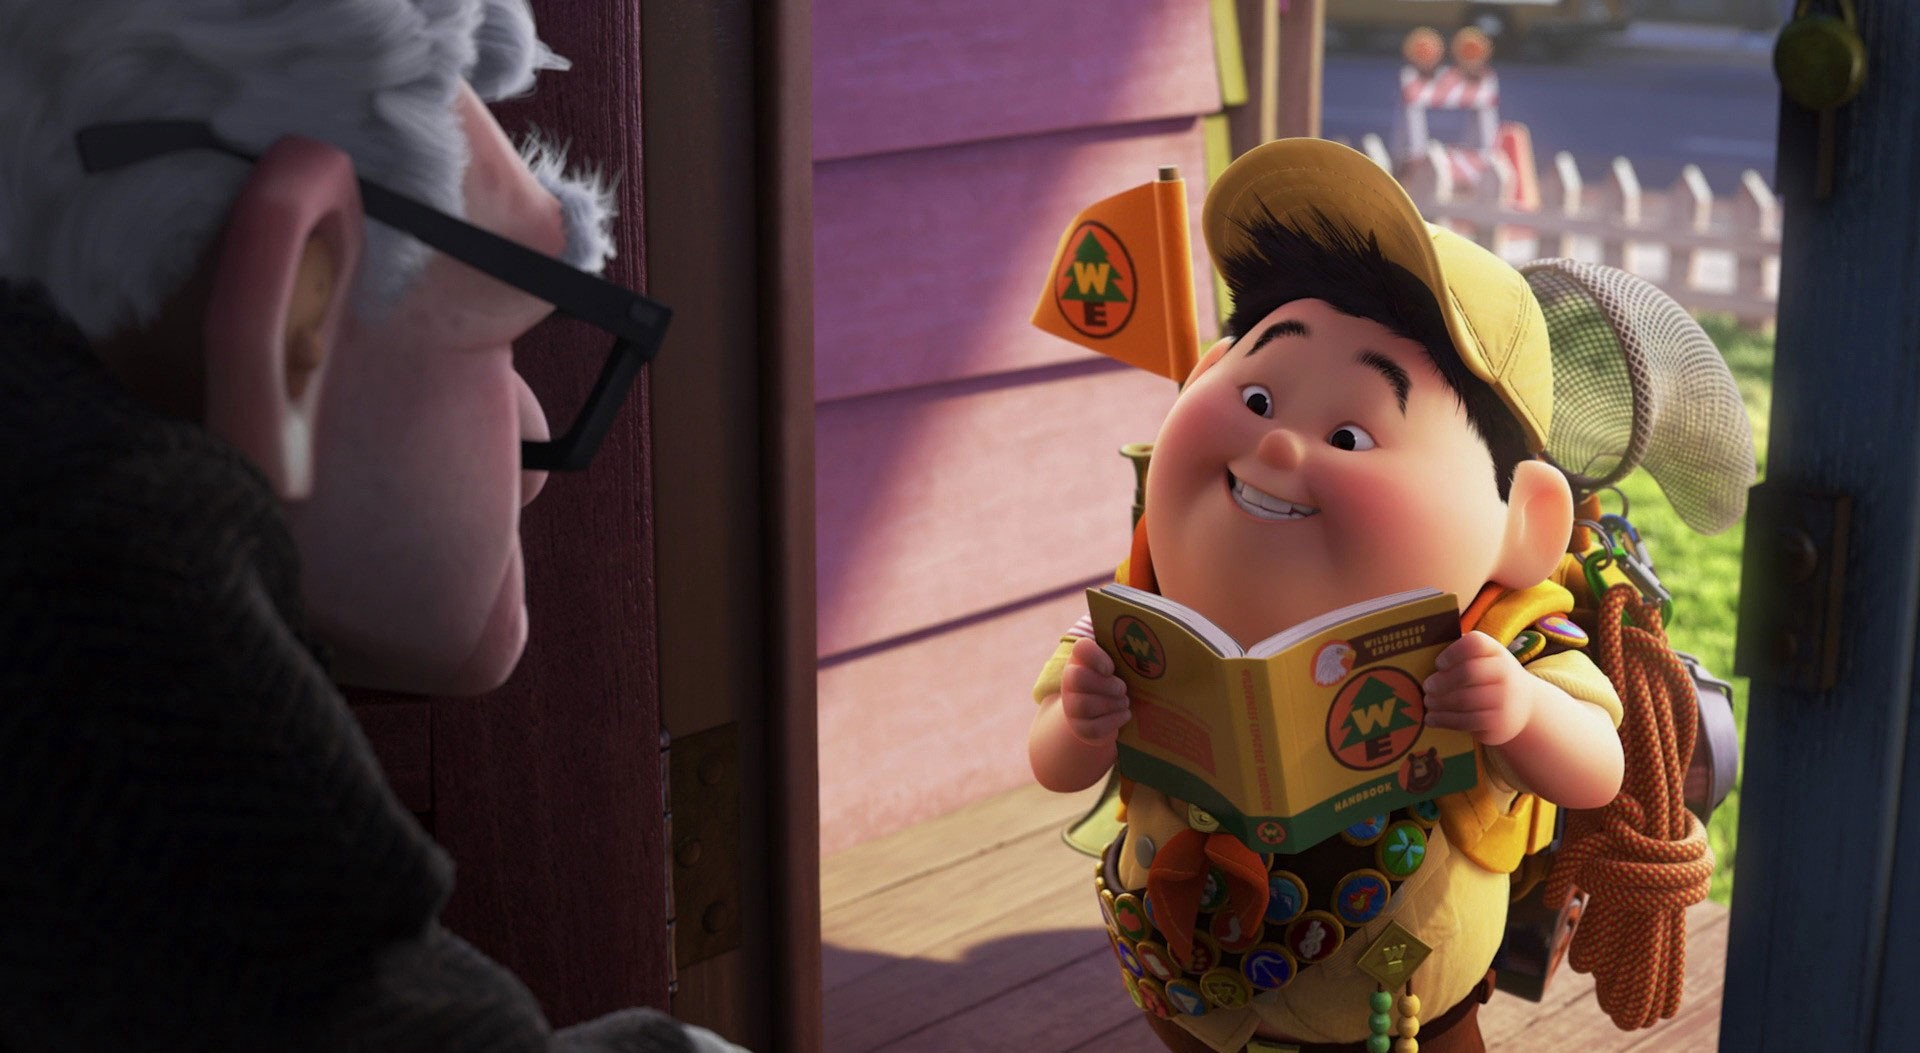 Russell, a young boy, stands in Carl's doorstep. He wears a yellow Boy Scouts-style uniform and reads aloud from a book.